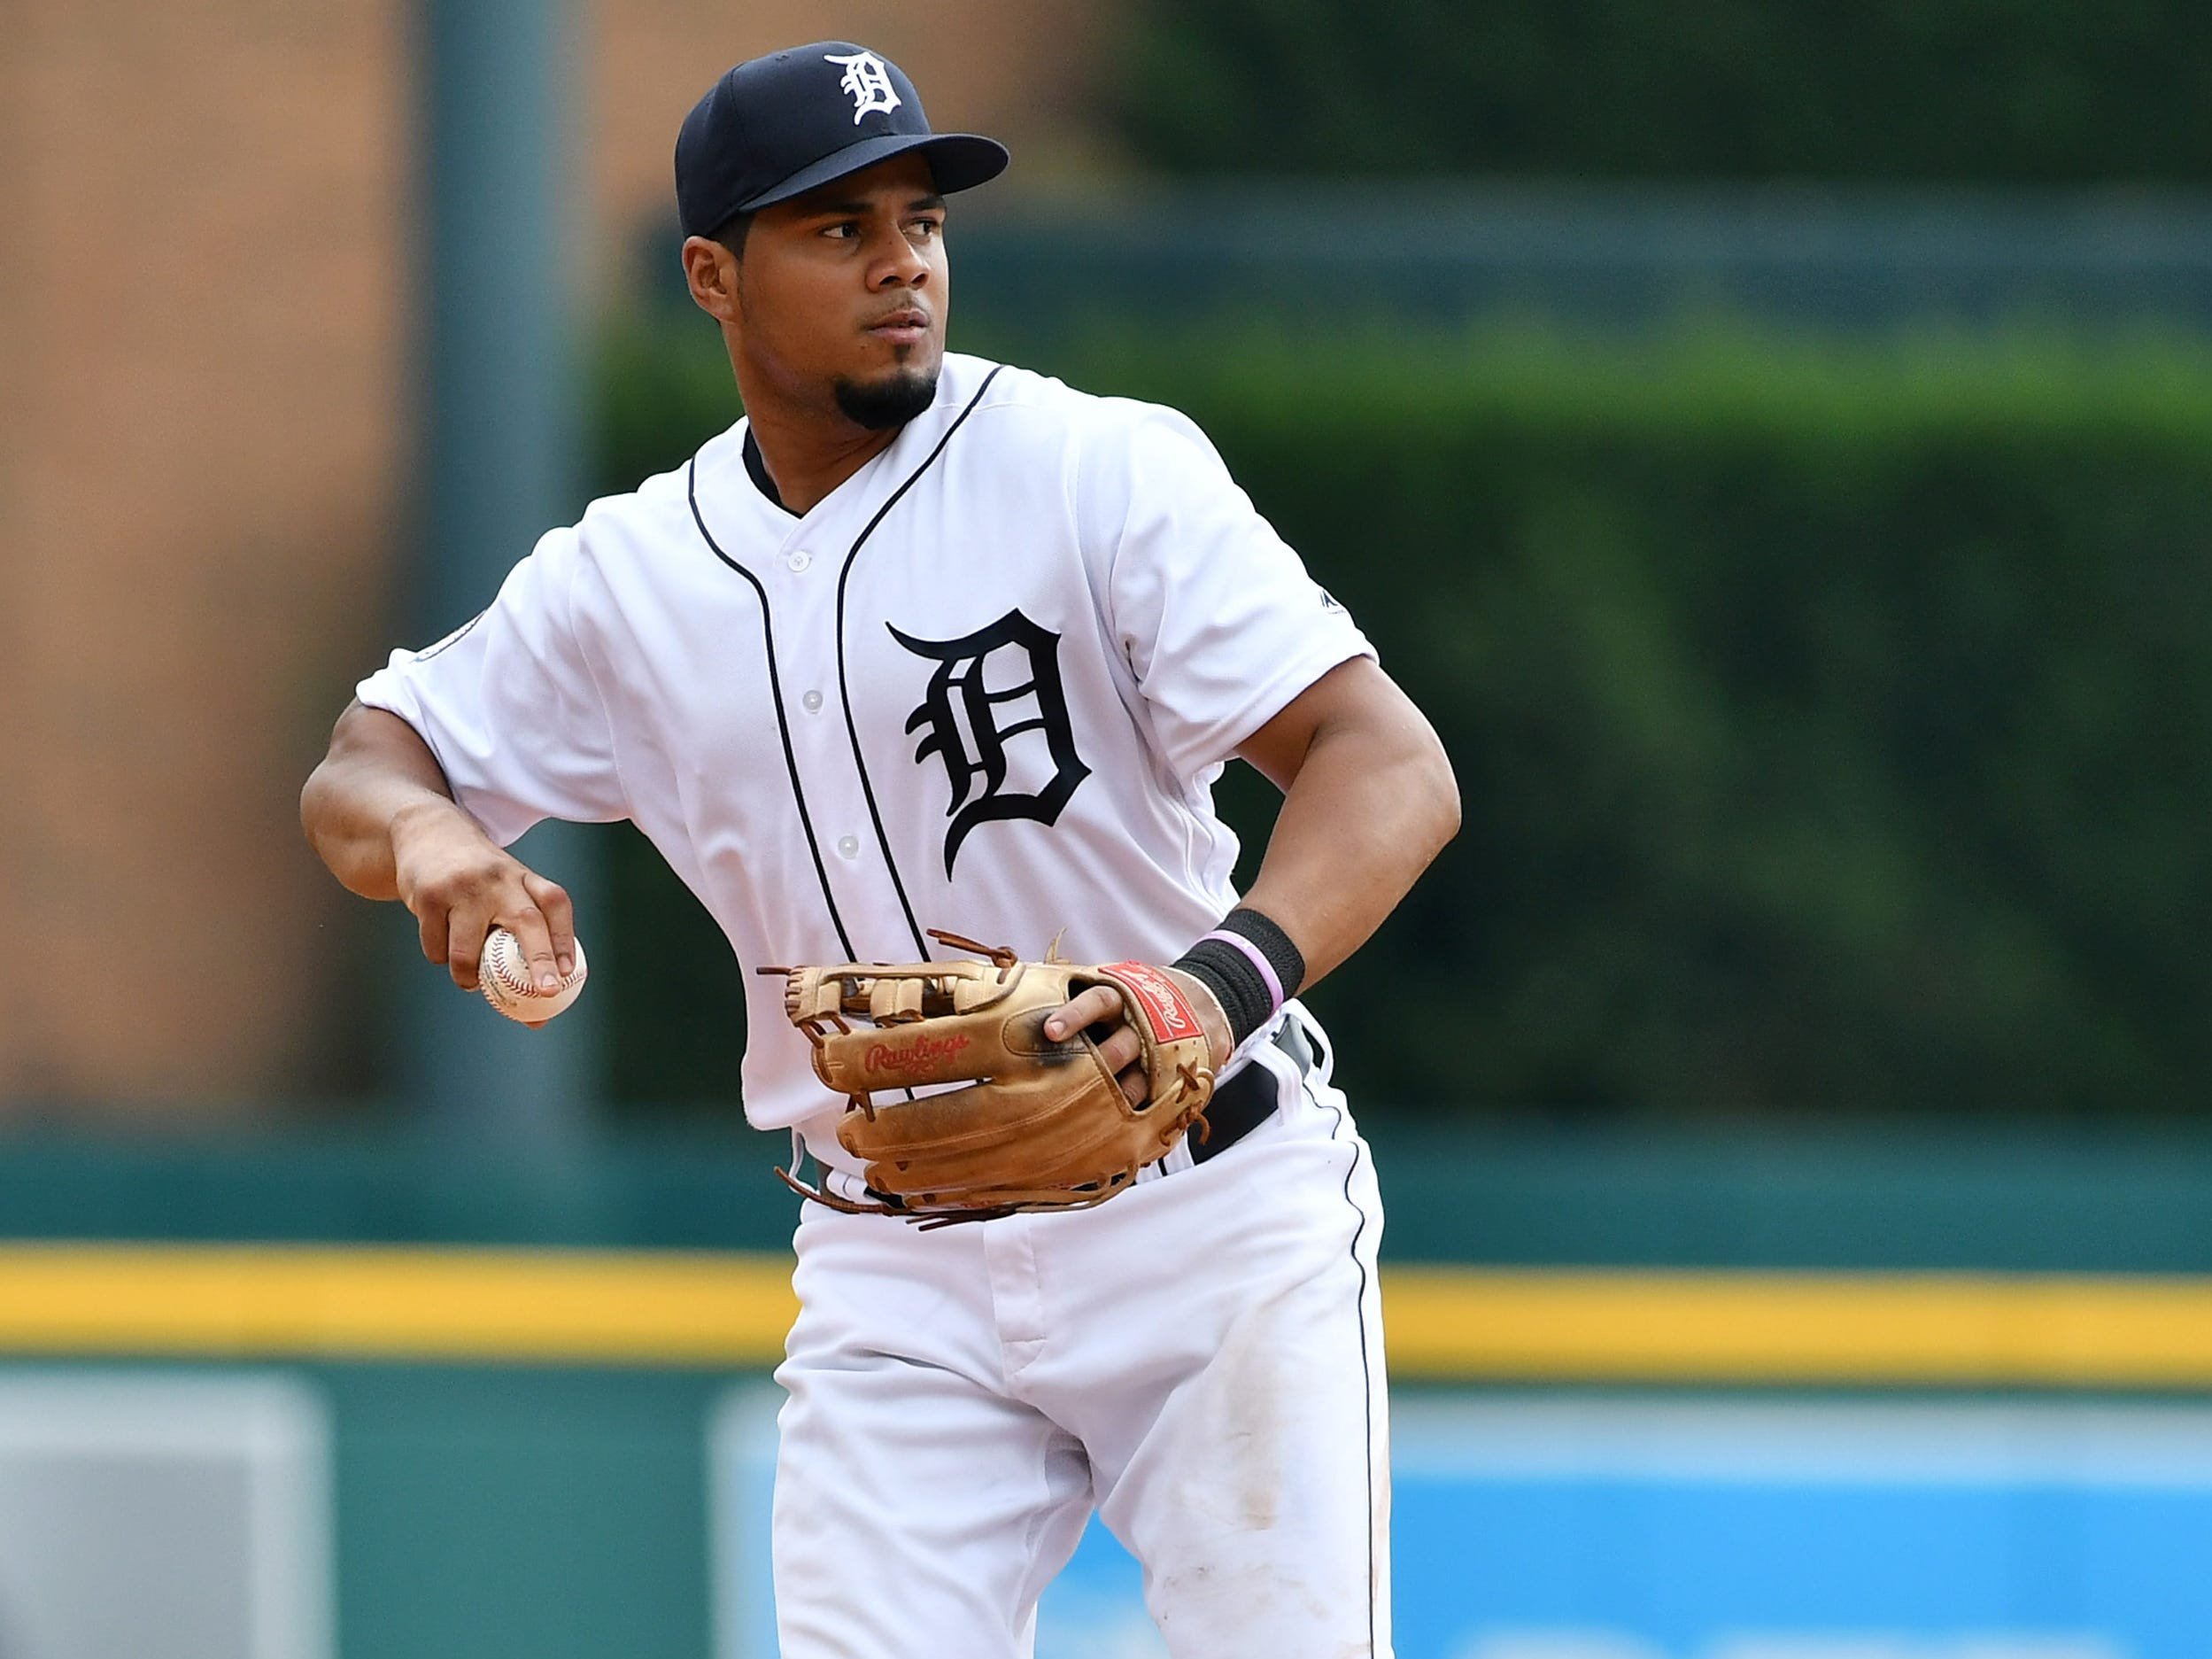 Tigers third baseman Jeimer Candelario about to throw to first for an out in the third inning.   Detroit Tigers vs Minnesota Twins at Comerica Park in Detroit on Aug. 12, 2018. 